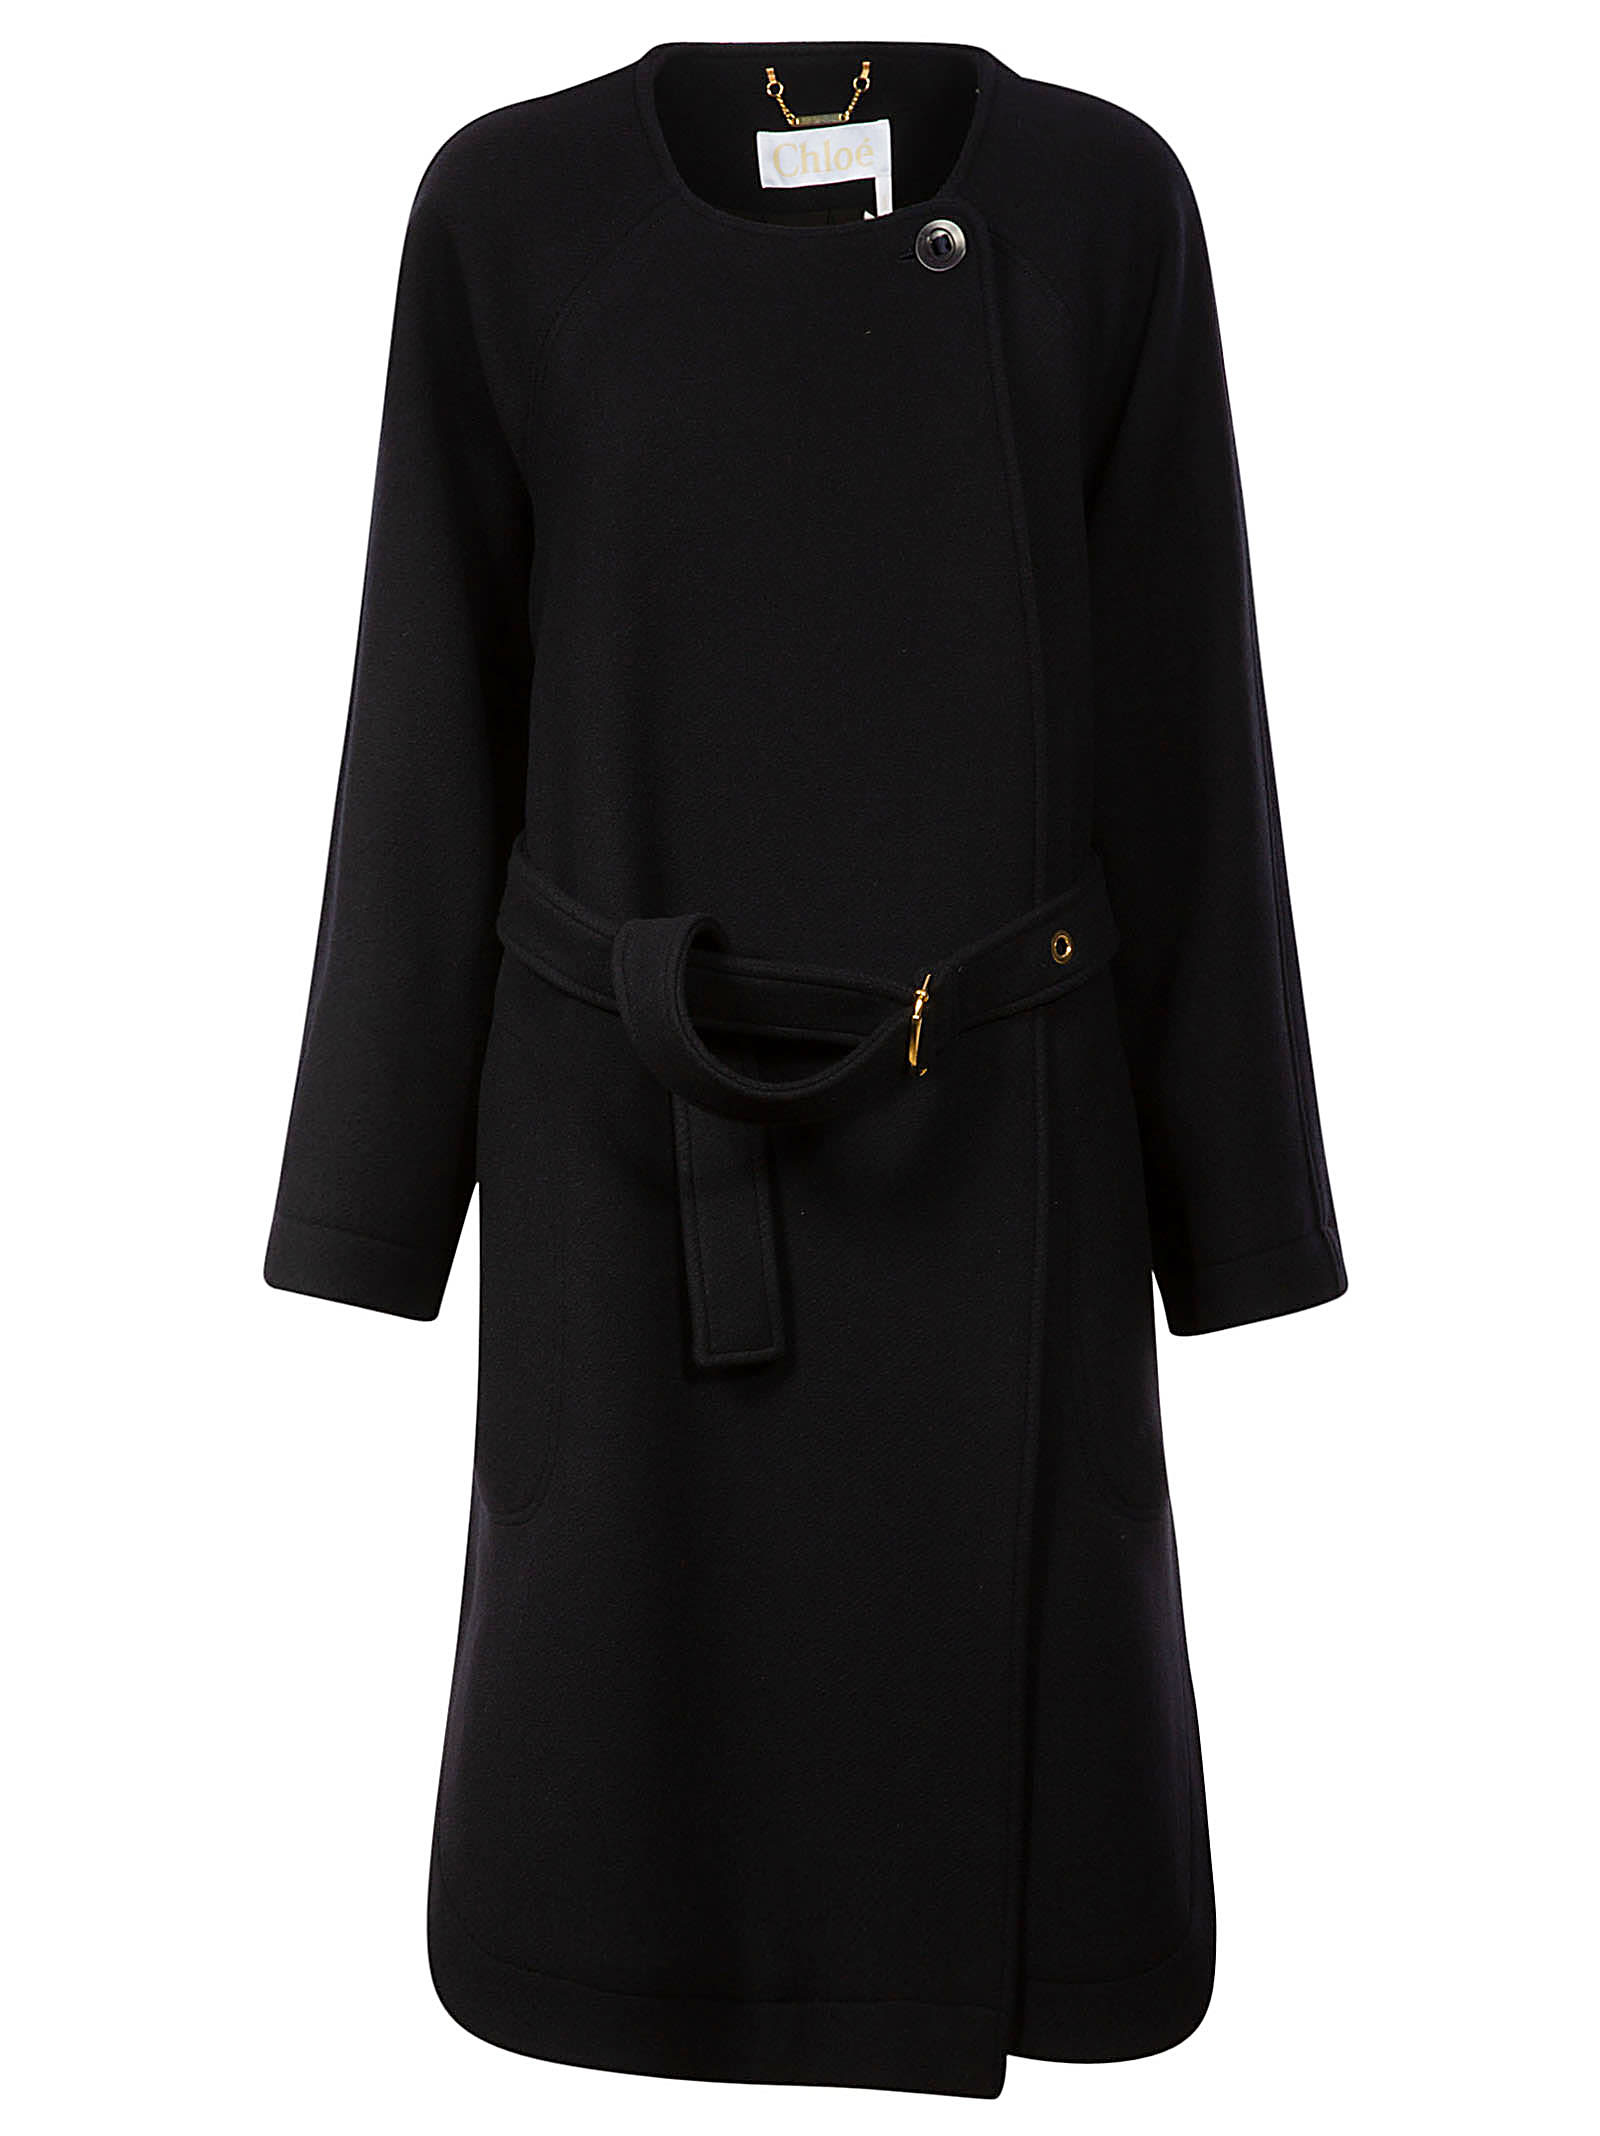 Buy Chloé Coat Belted Waist One-side Dress online, shop Chloé with free shipping